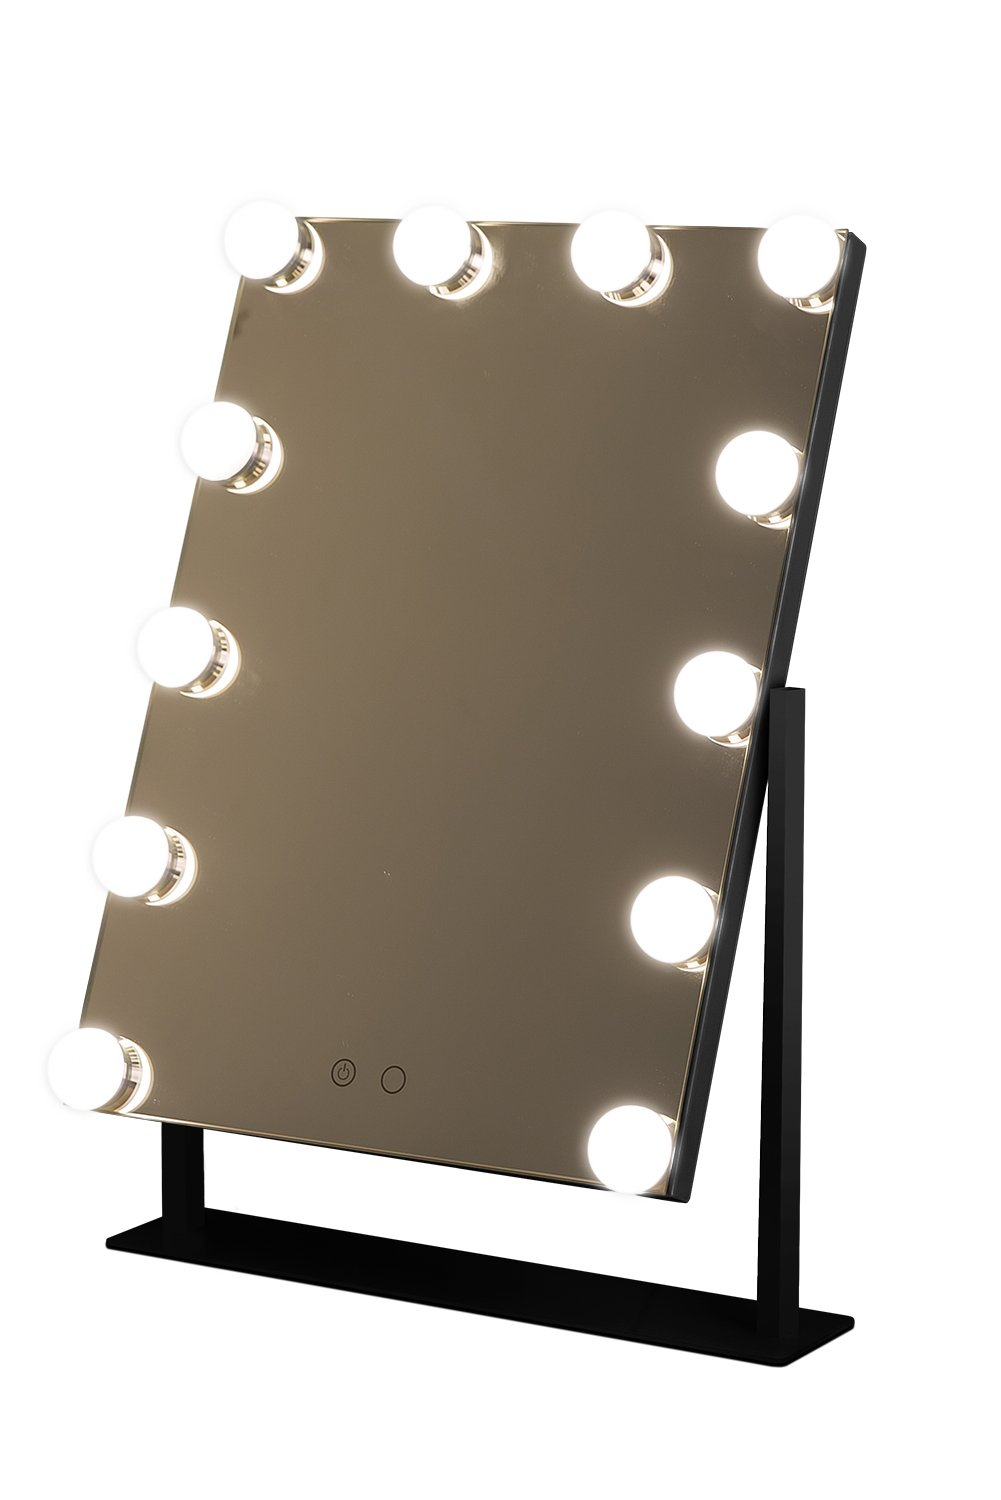 Geek-House Large Frameless Hollywood Tabletops Lighted Makeup Vanity Mirror (12 LED Bulb) with Dimmer Angle-Adjustable Black